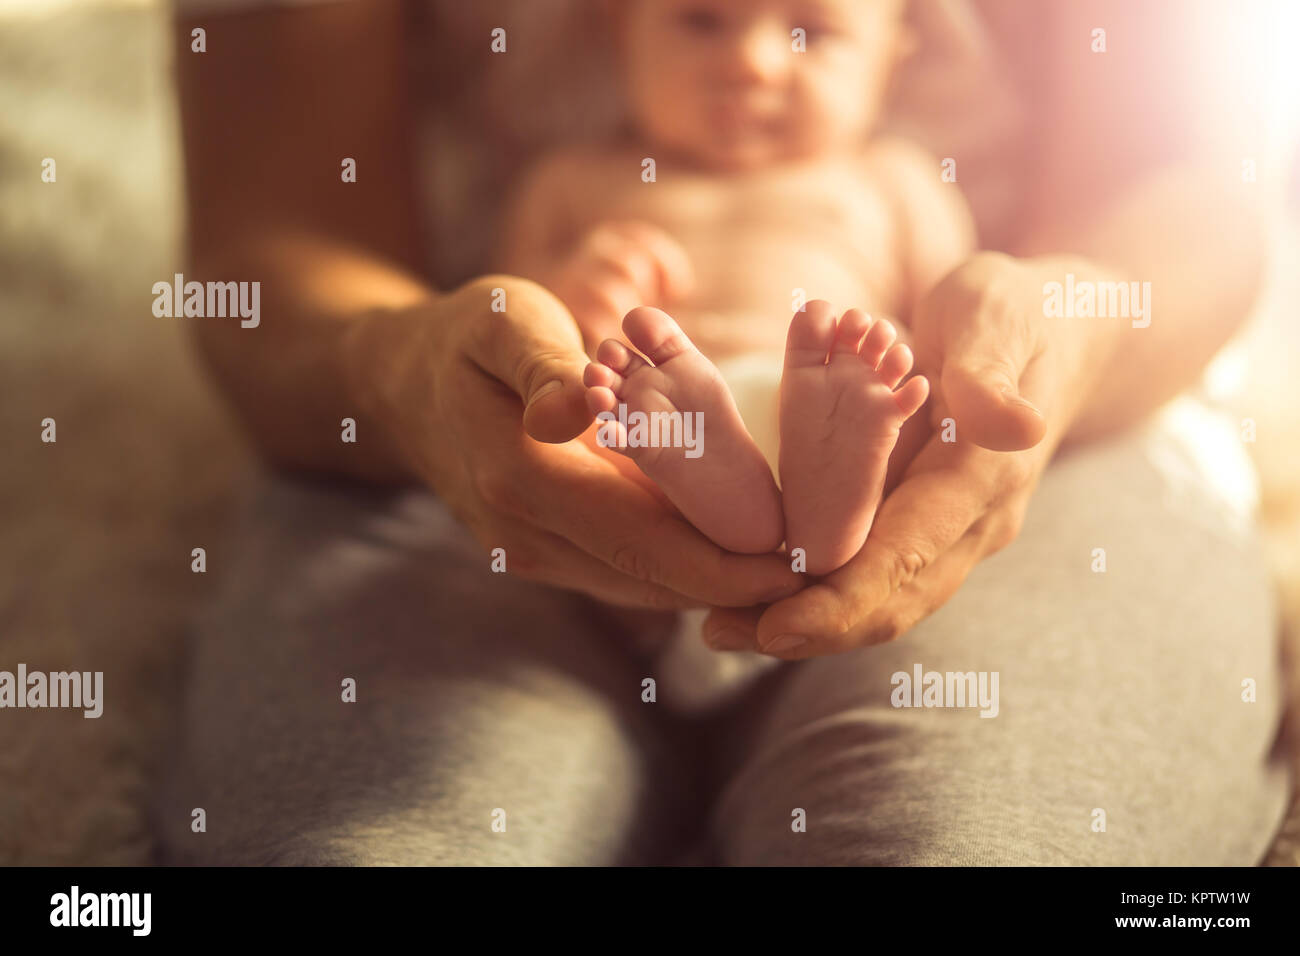 Mother holds newborn baby's feets. Tiny feet in woman's hand. Stock Photo